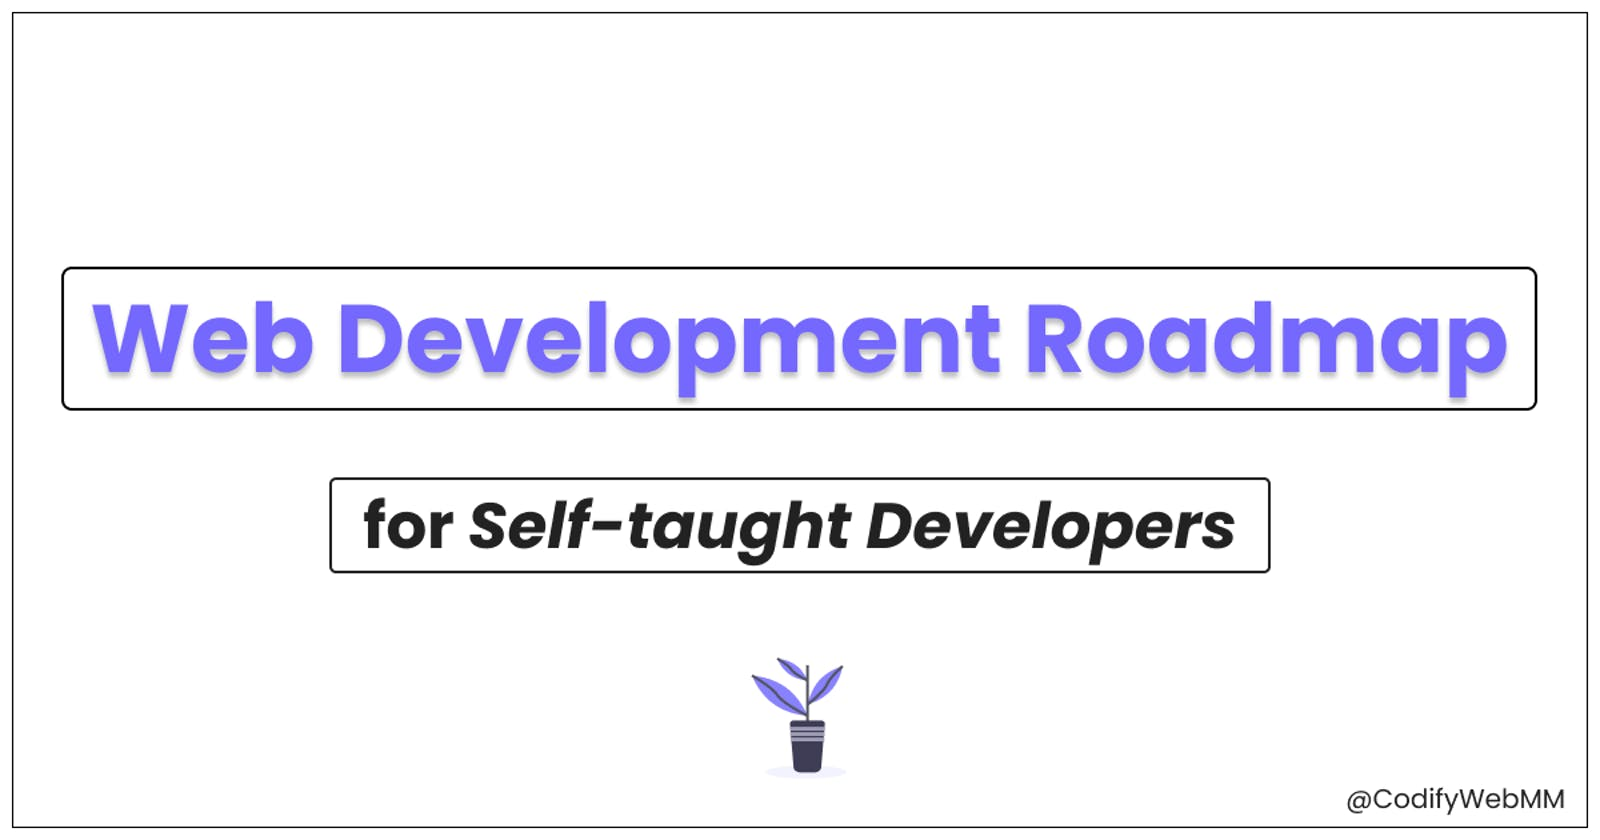 Front-end Web Development Roadmap for Self-taught Developers